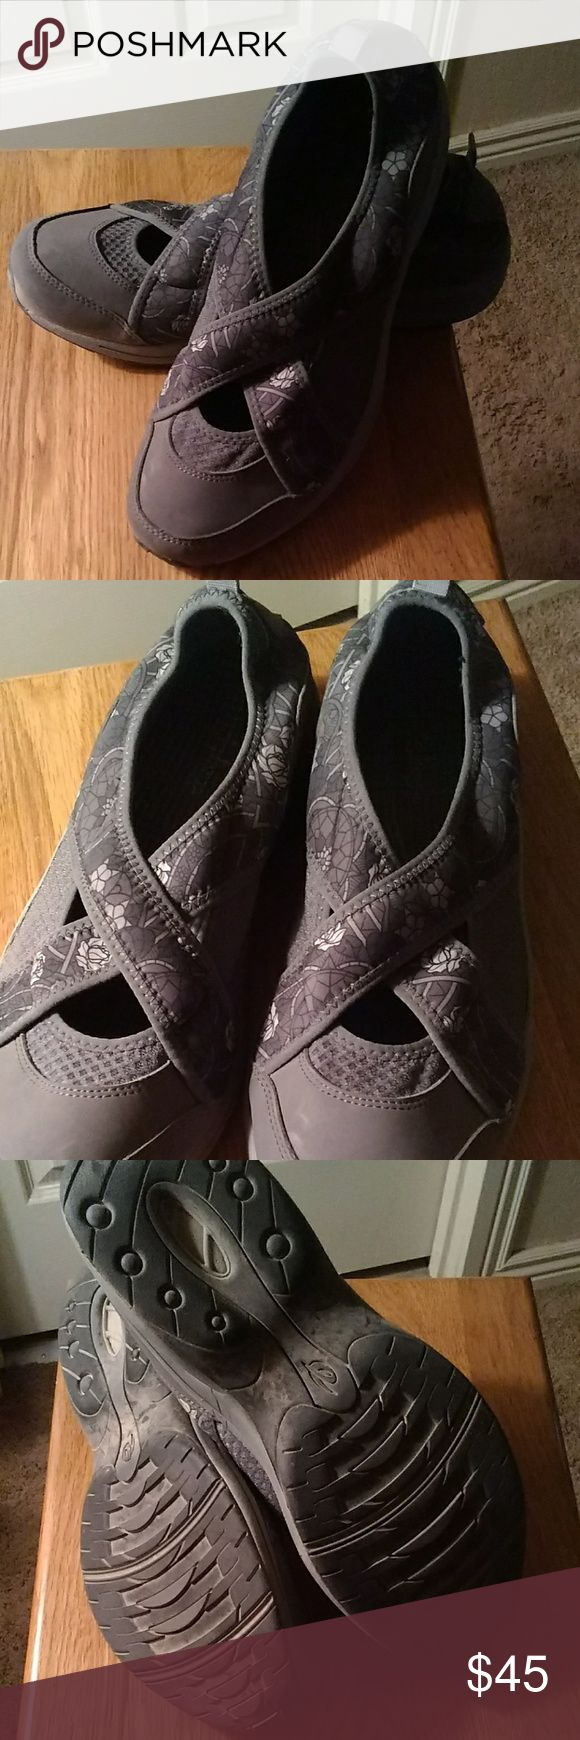 LAST PRICE DROP Easy spirit slip on EUC...cute gray slip on with flower print very comfy. Easy Spirit Shoes Flats & Loafers